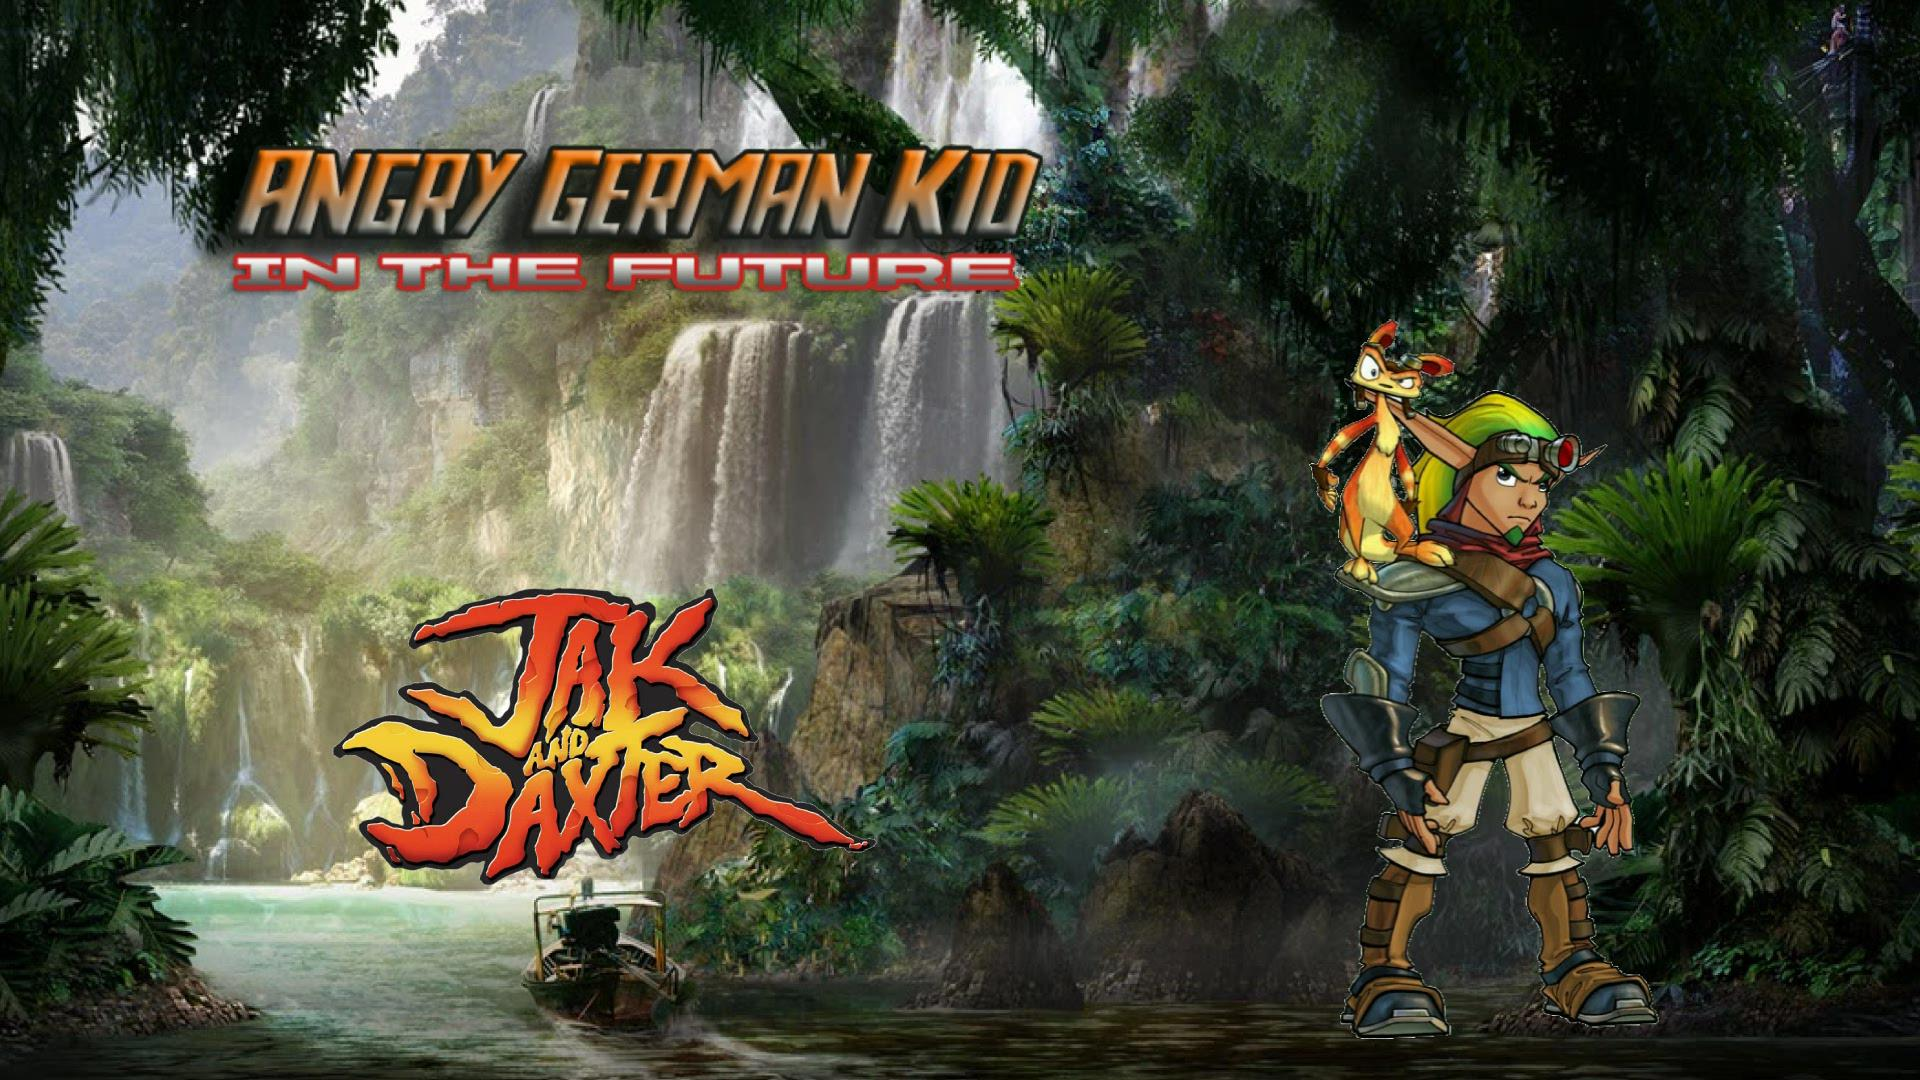 Download Jak Daxter Wallpapers: FANDOM Powered By Wikia